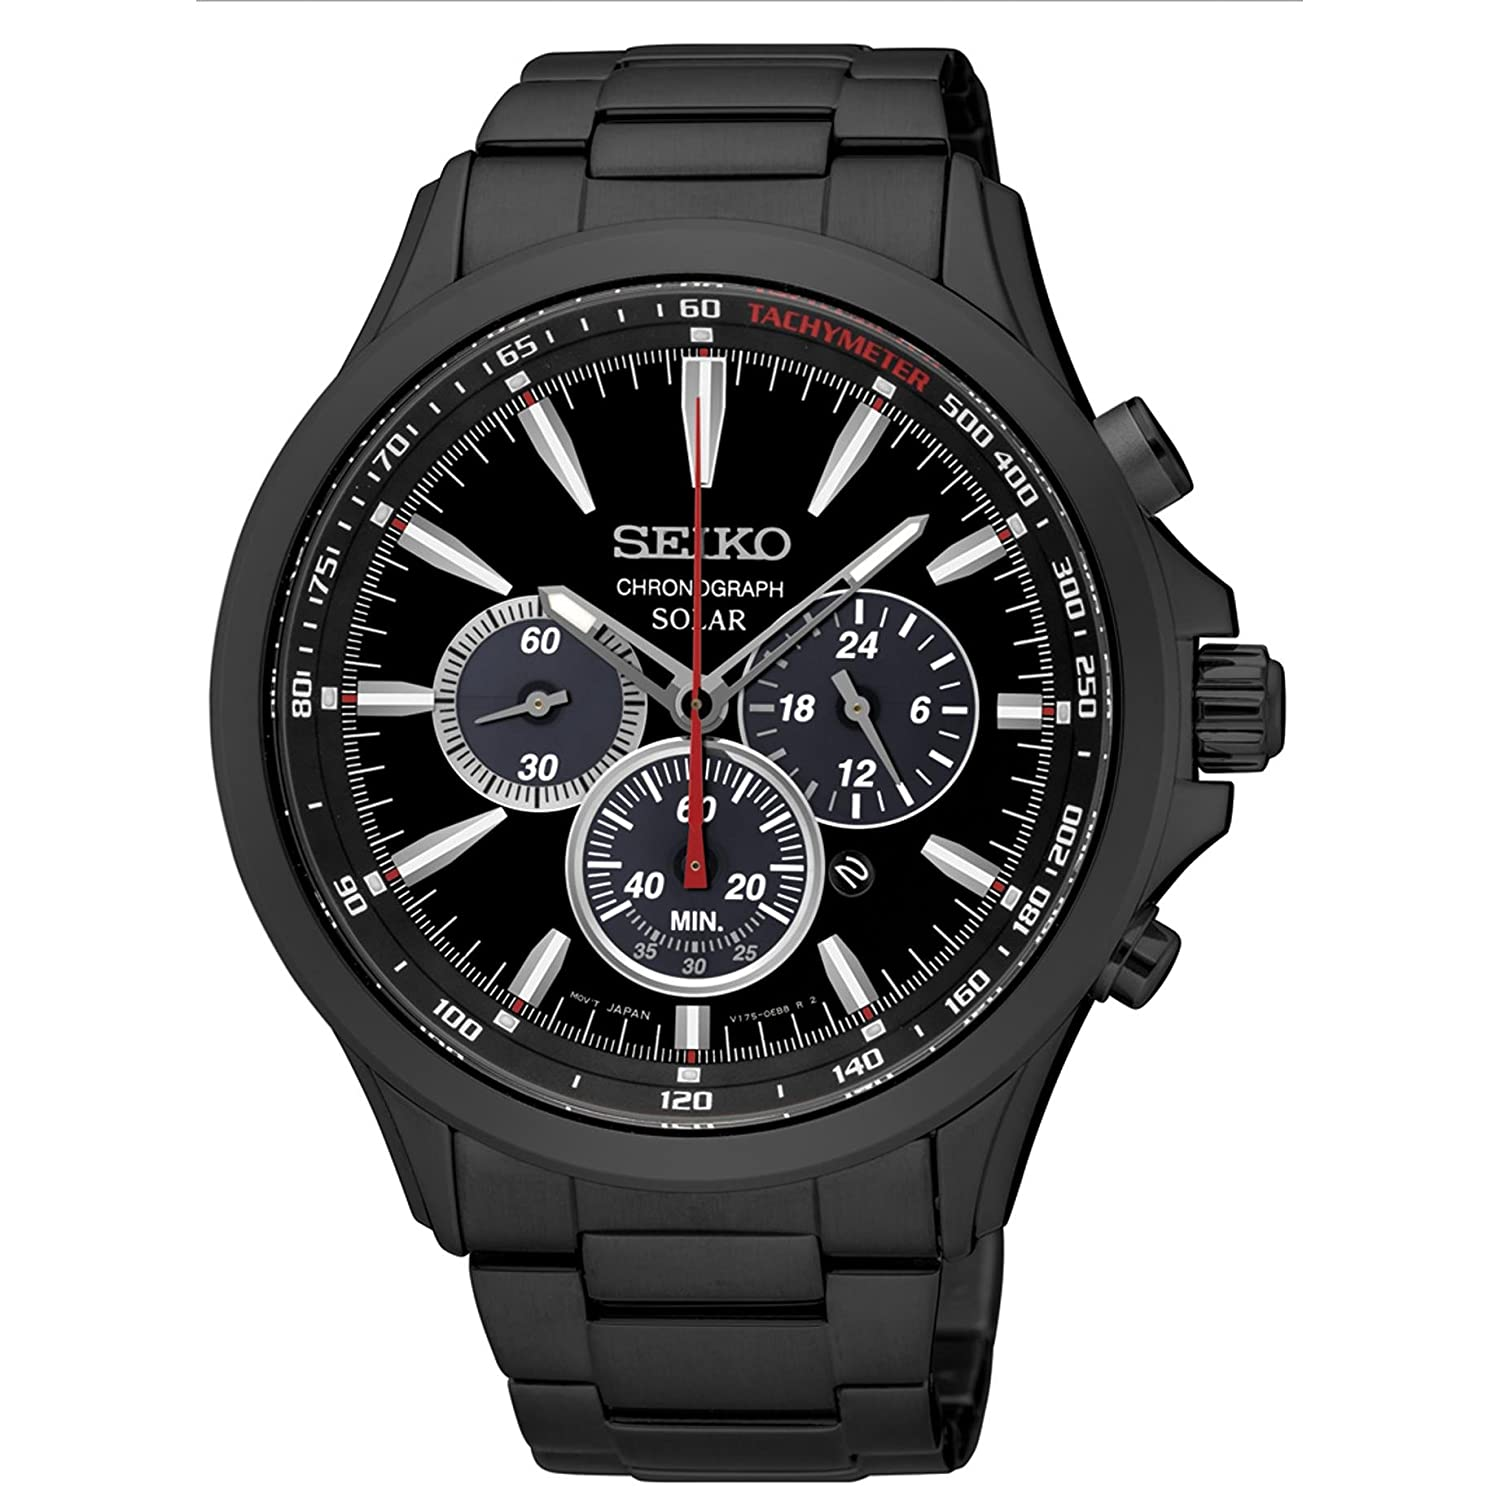 Amazon.com: Japan Mens Analog Casual Solar Seiko Watch ...